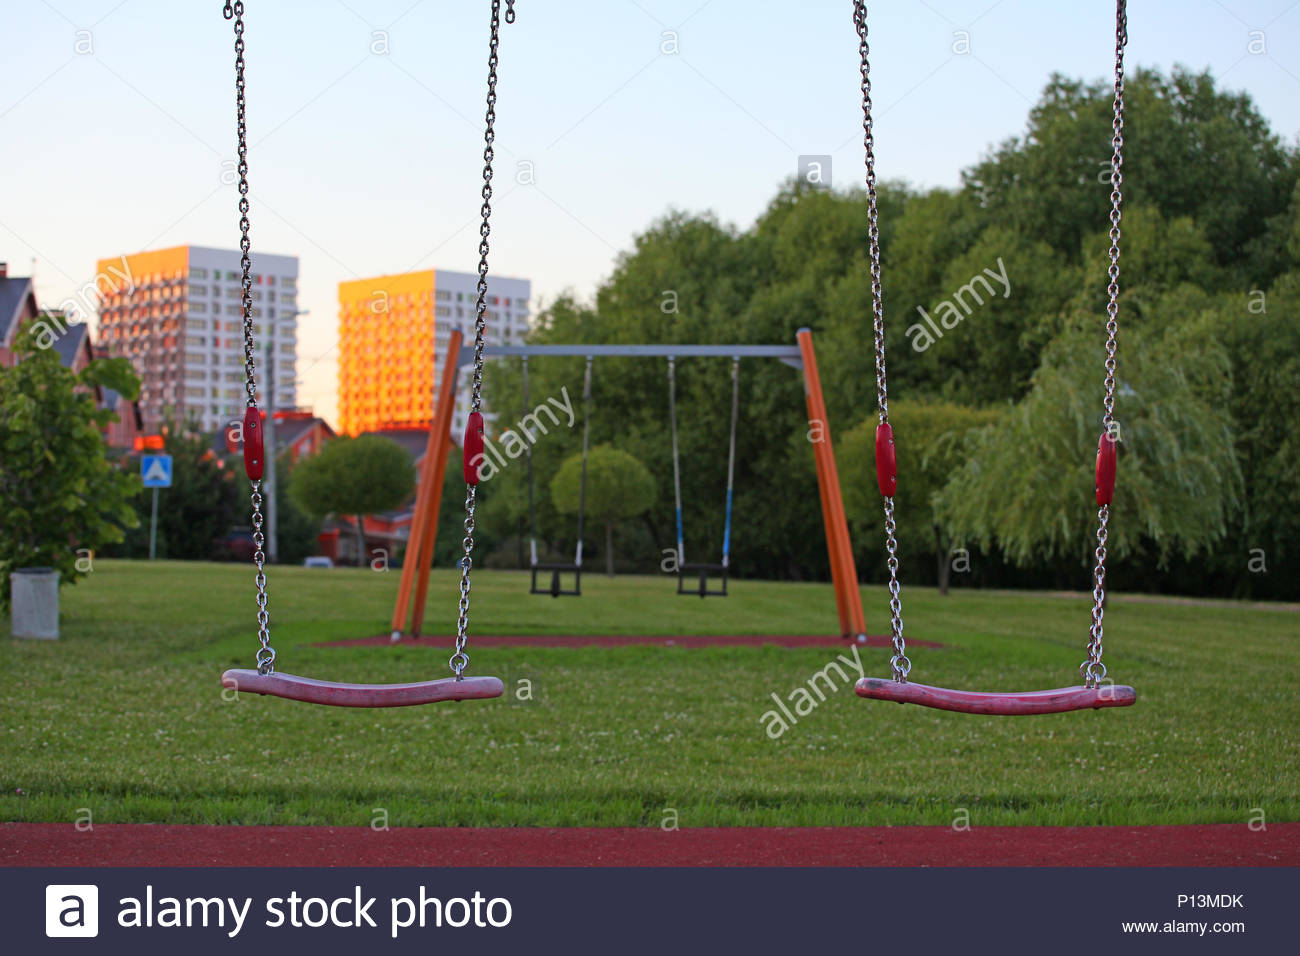 playground swing evening park - Stock Image